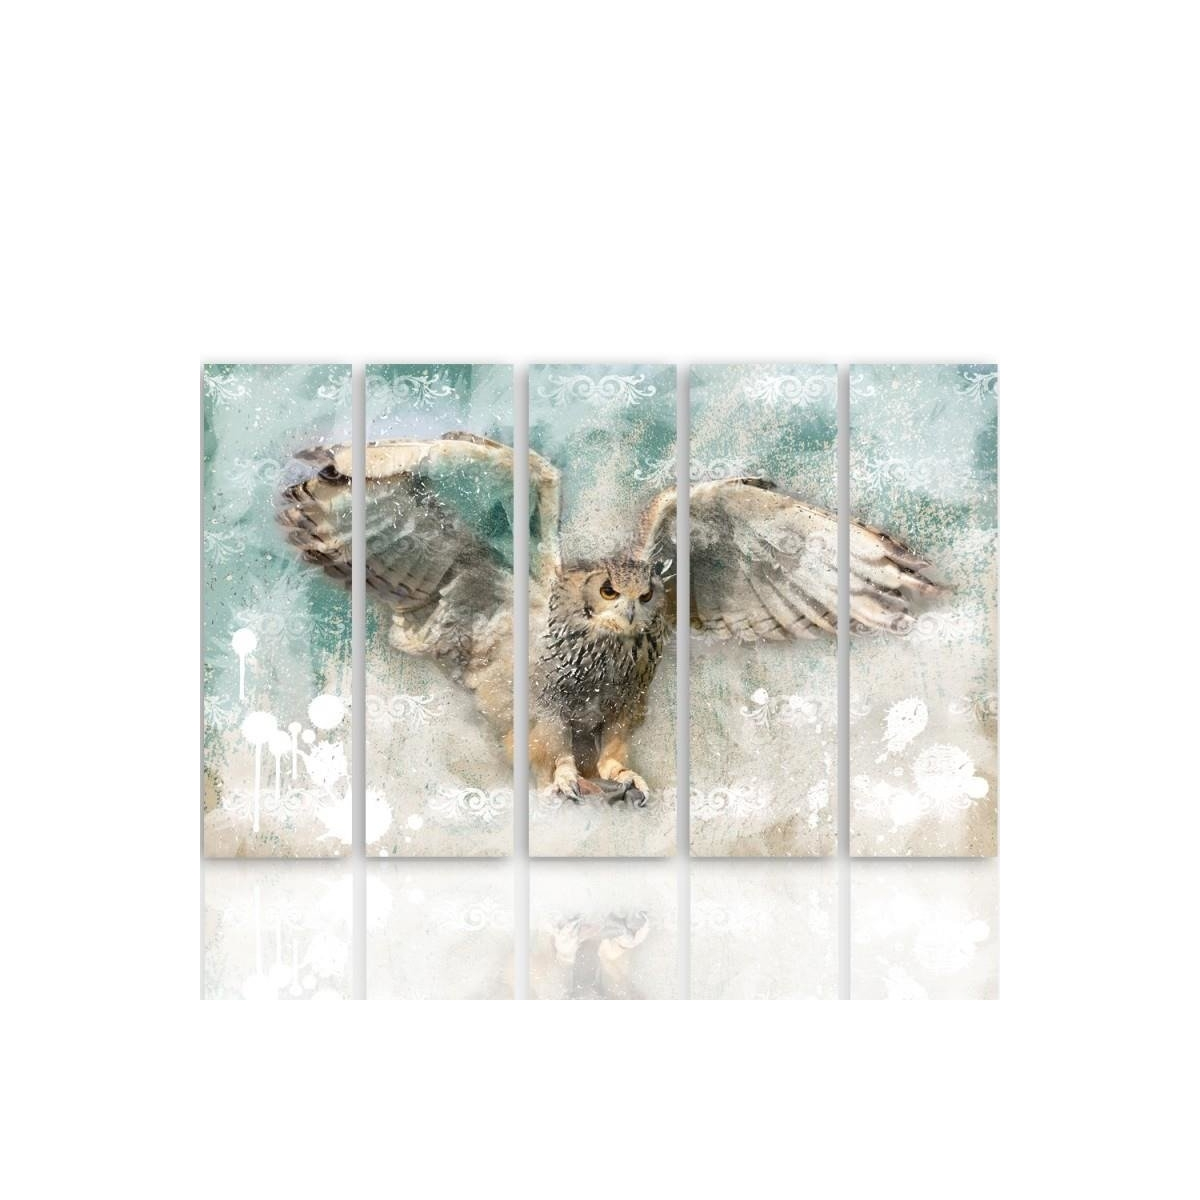 Five Part Picture On Canvas, Pentaptych, Type C, Owl In Flight 100x150